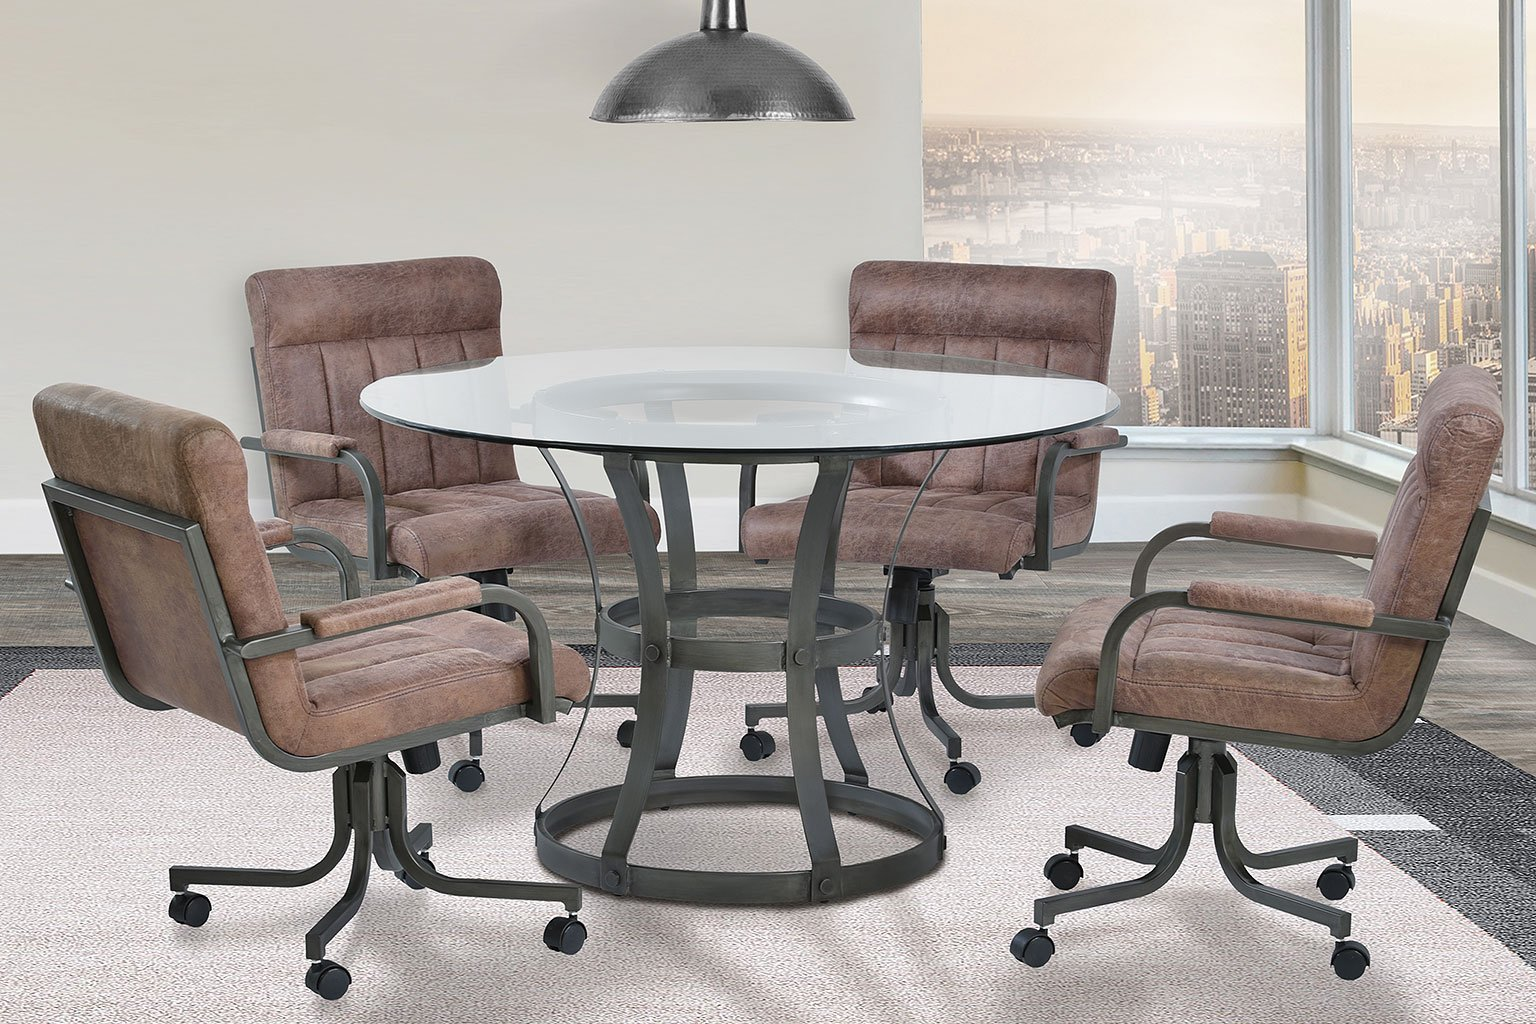 Dining Room Furniture Vancouver: Vancouver Dining Room Set W/ Tobacco Chairs (Mineral